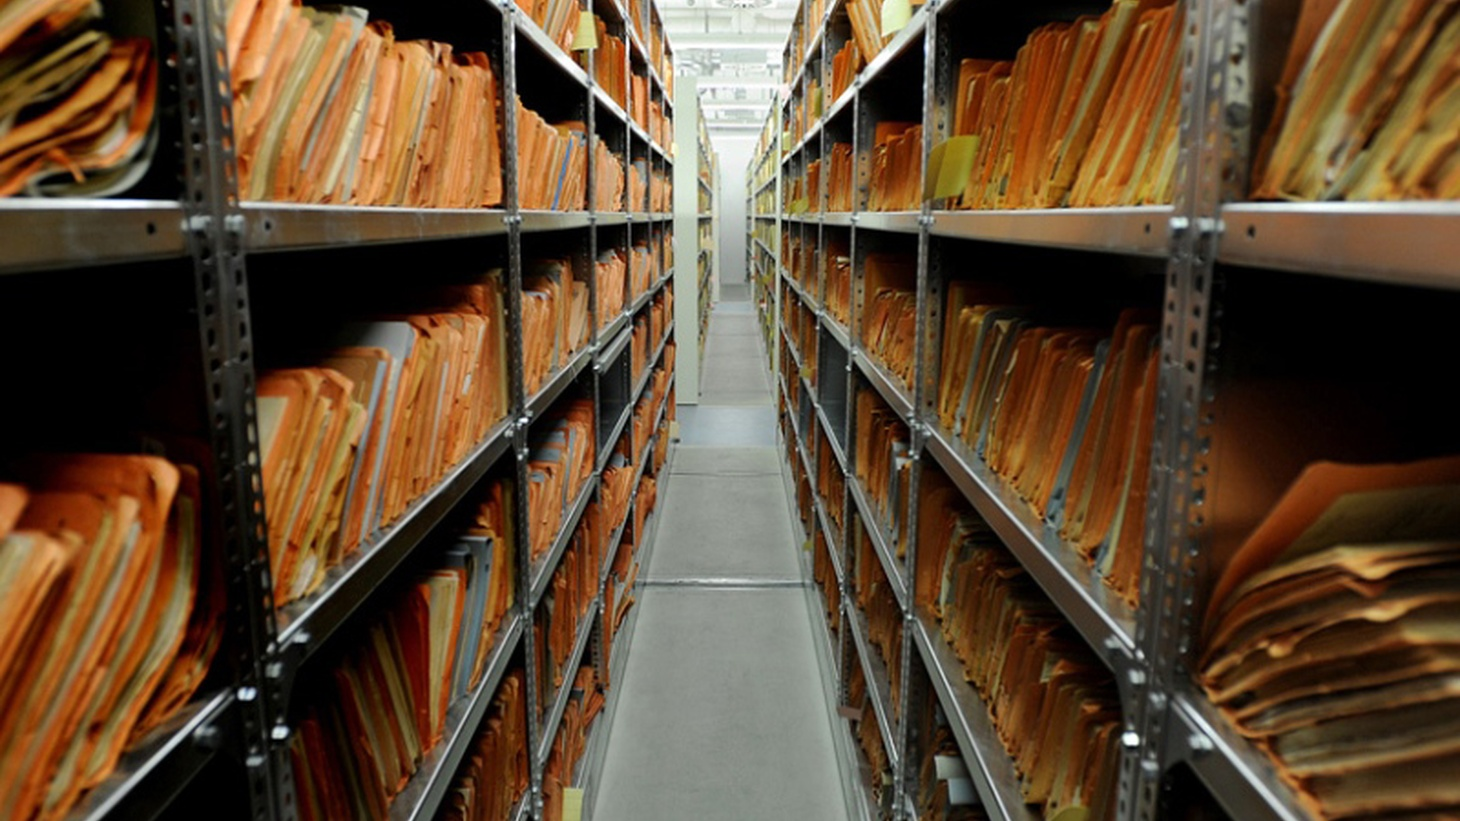 Last month in Berlin, Warren visited the archives of Stasi, the Communist secret police of East Germany. He learned that paperwork was almost as important to oppressive control as maintaining a climate of fear.